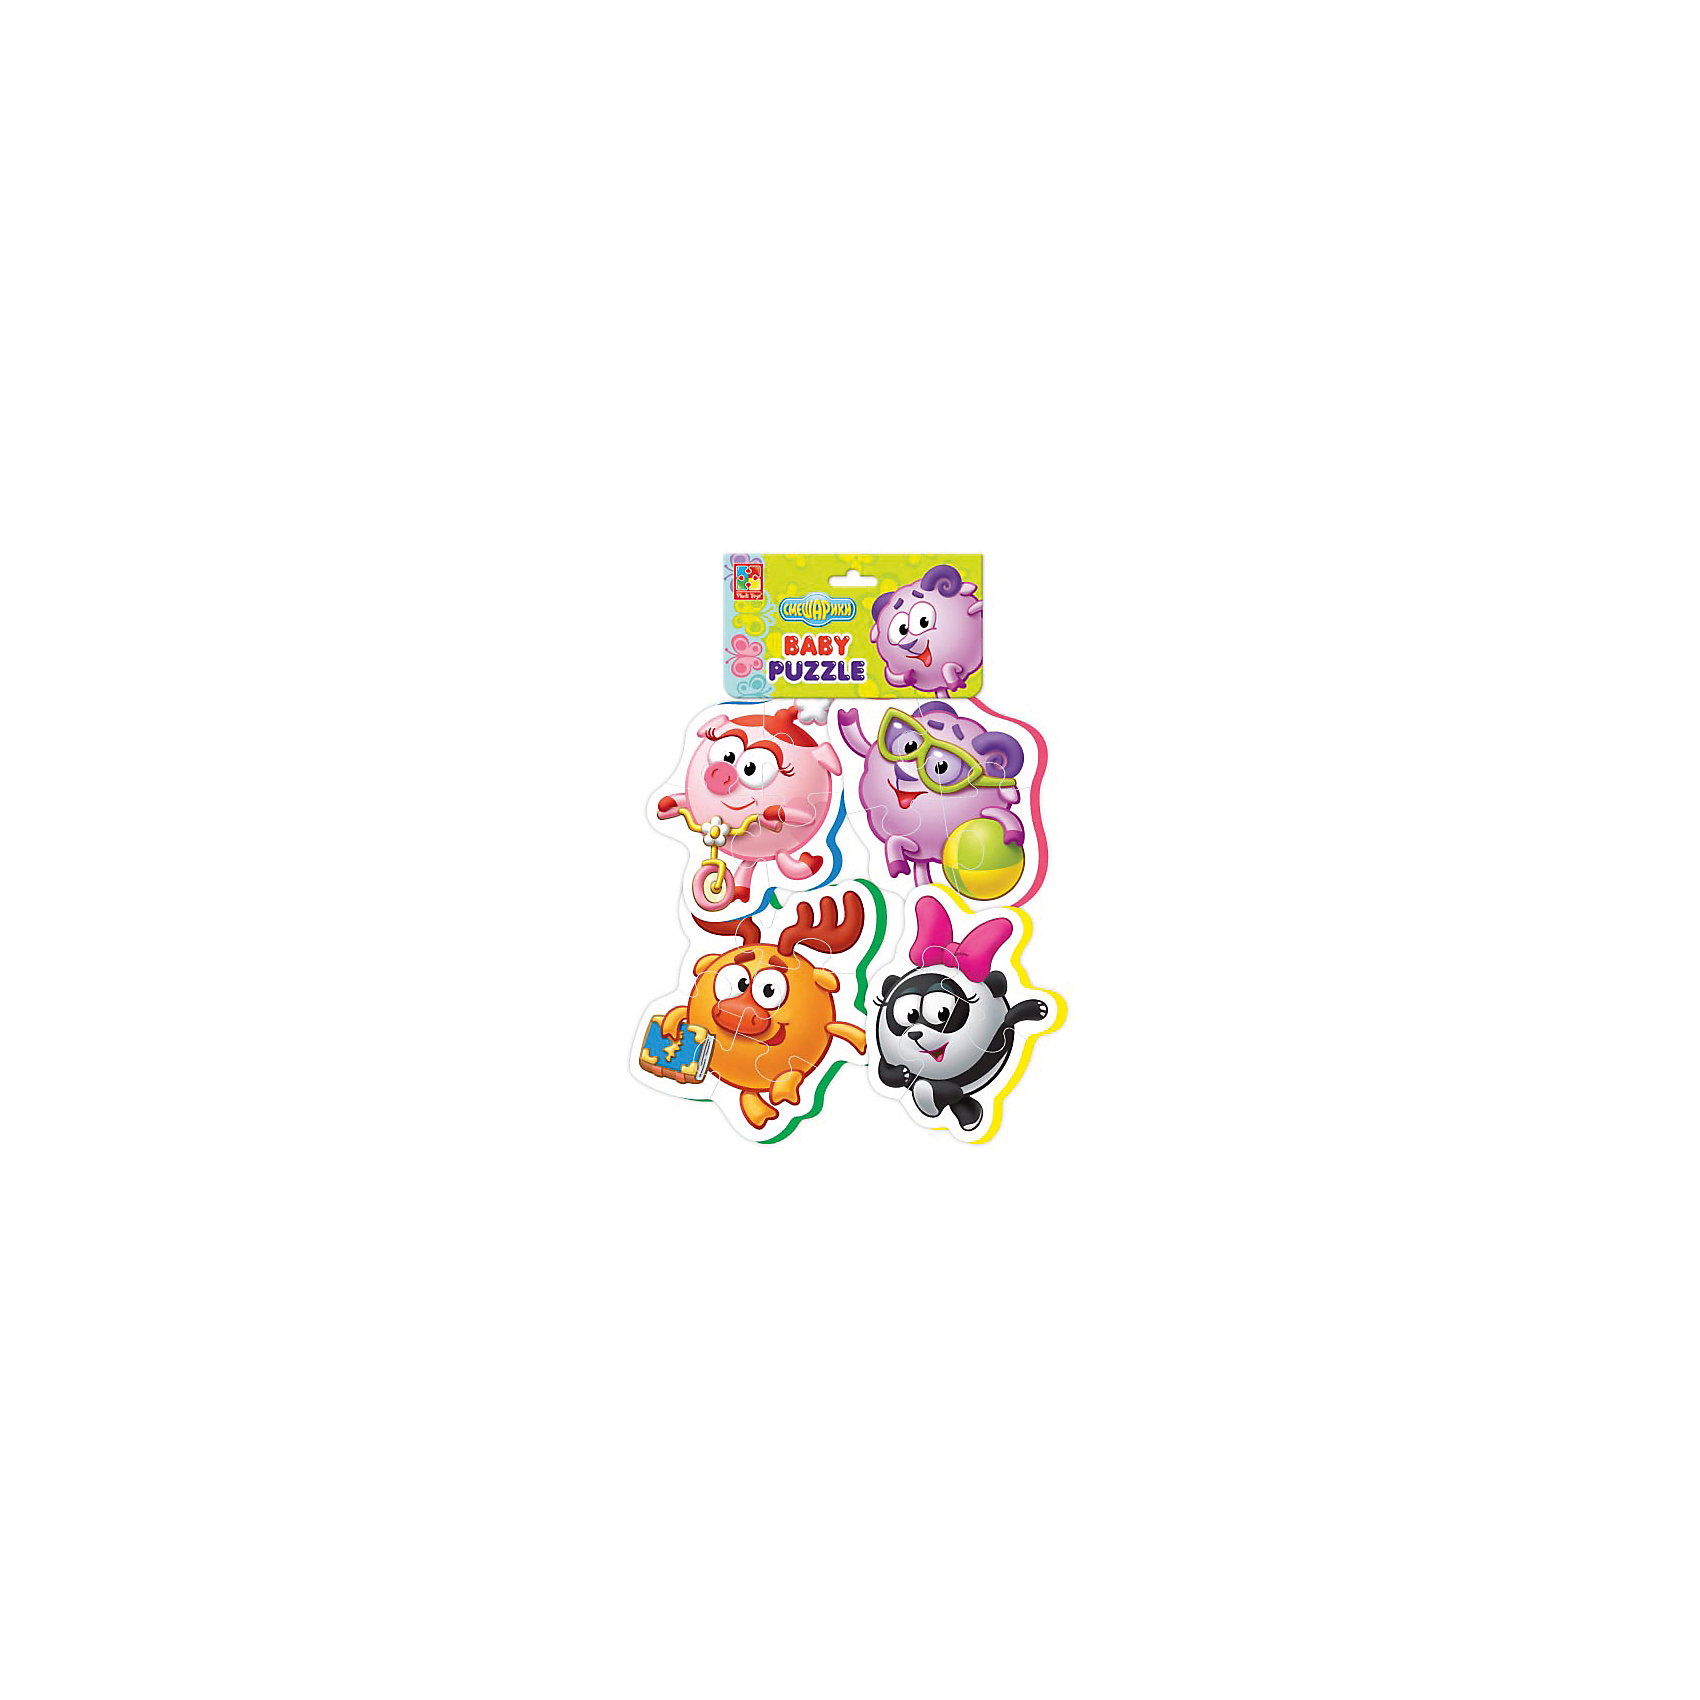 Vladi Toys Мягкие пазлы Смешарики, Vladi Toys пазлы vladi toys пазлы мягкие baby puzzle сказки репка